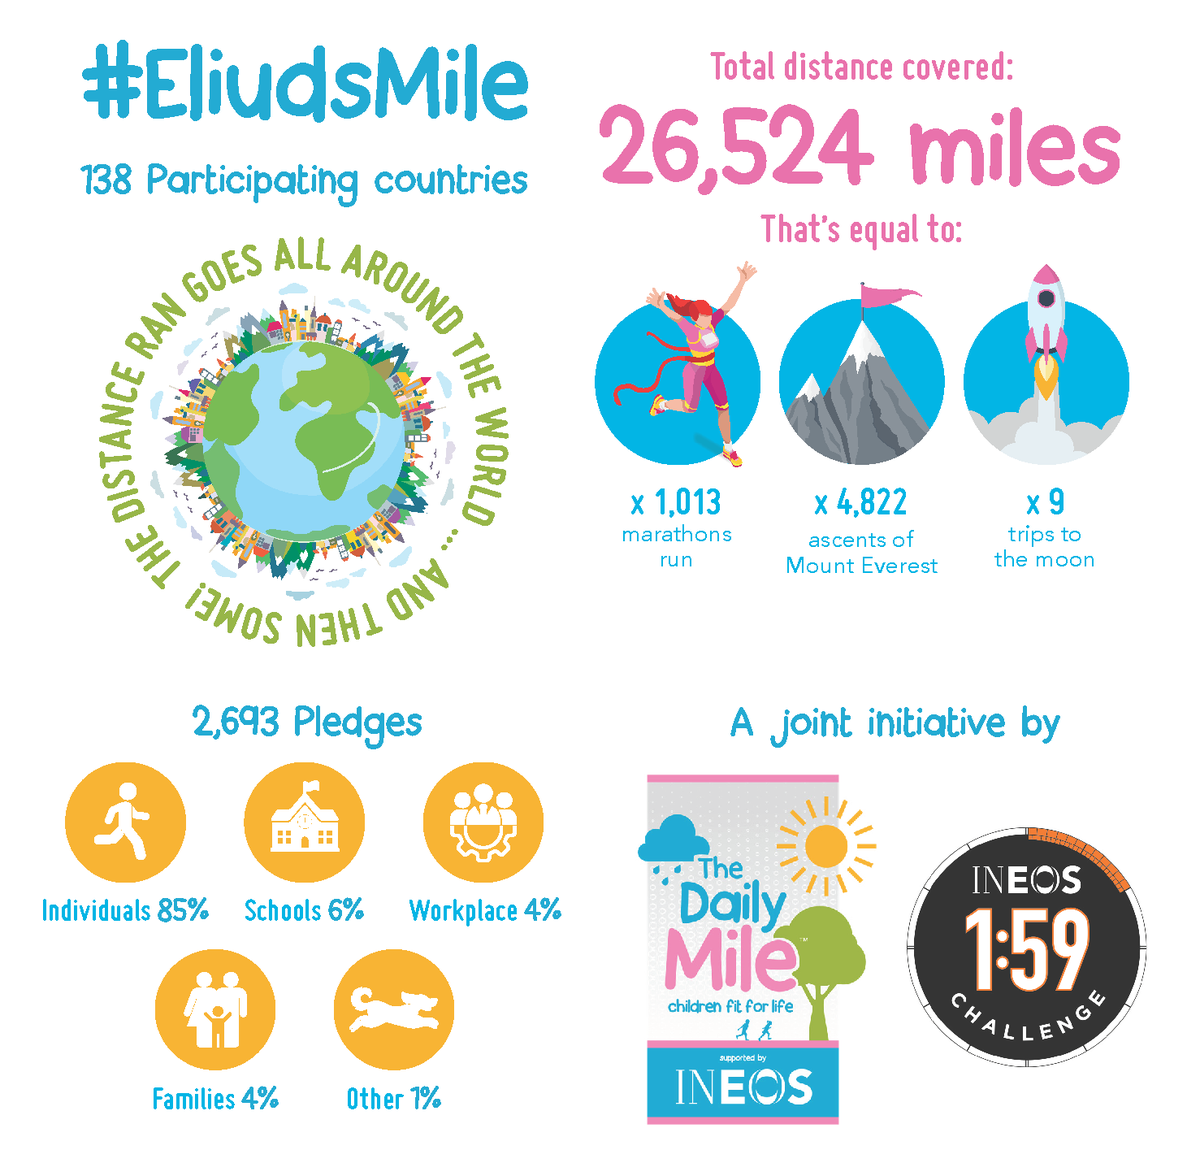 🌍 Wed like to say a huge THANK YOU to everyone who got involved in our #EliudsMile challenge on Monday, 12th of October! We had 2,693 pledges and collectively ran 26,524 miles... Thats equivalent to climbing Mt. Everest 4,822 times! 🗻 ♥️ @EliudKipchoge ♥️ @INEOS159 ♥️